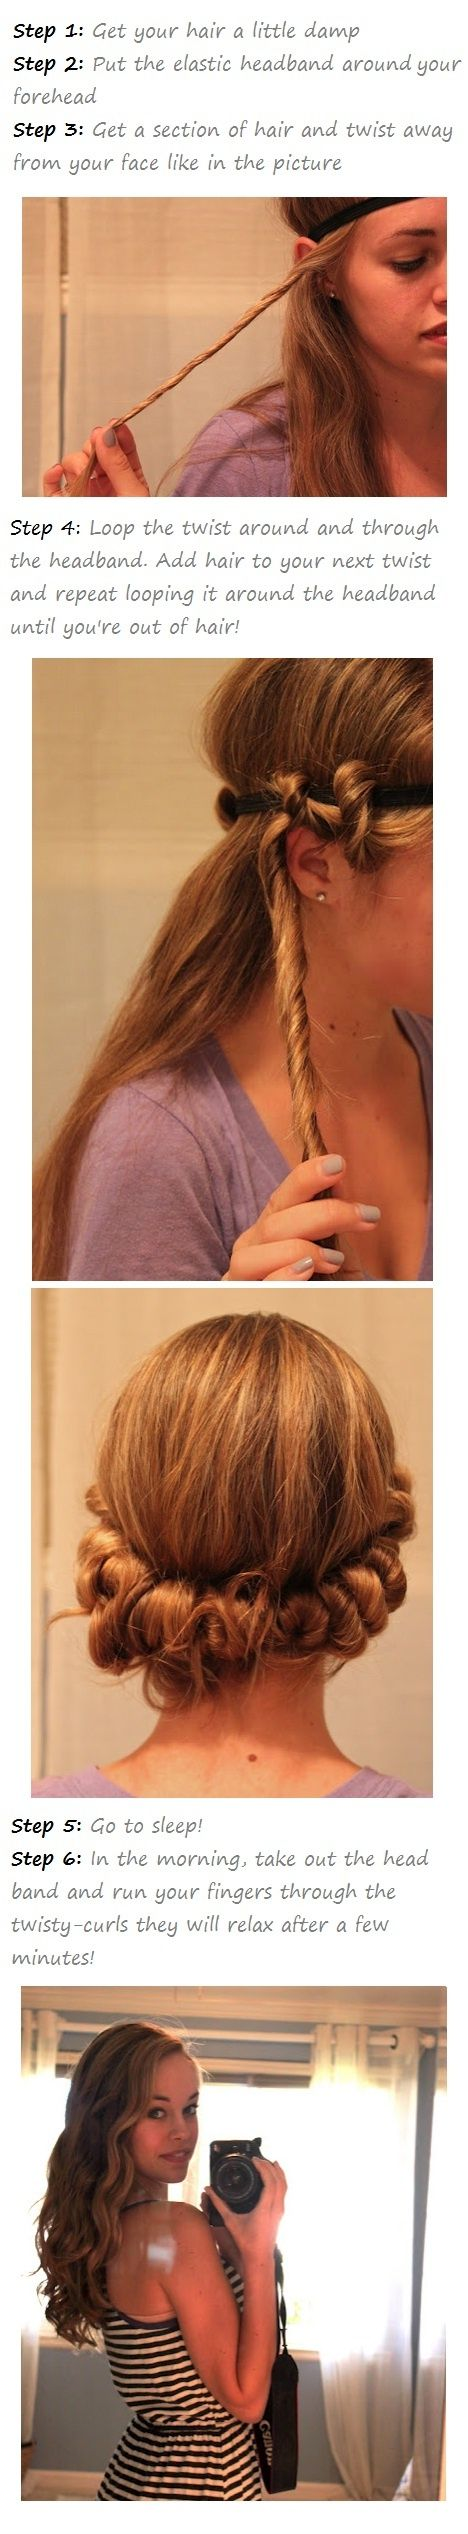 How to curl hair. I'll try and try, it'll never work for me.